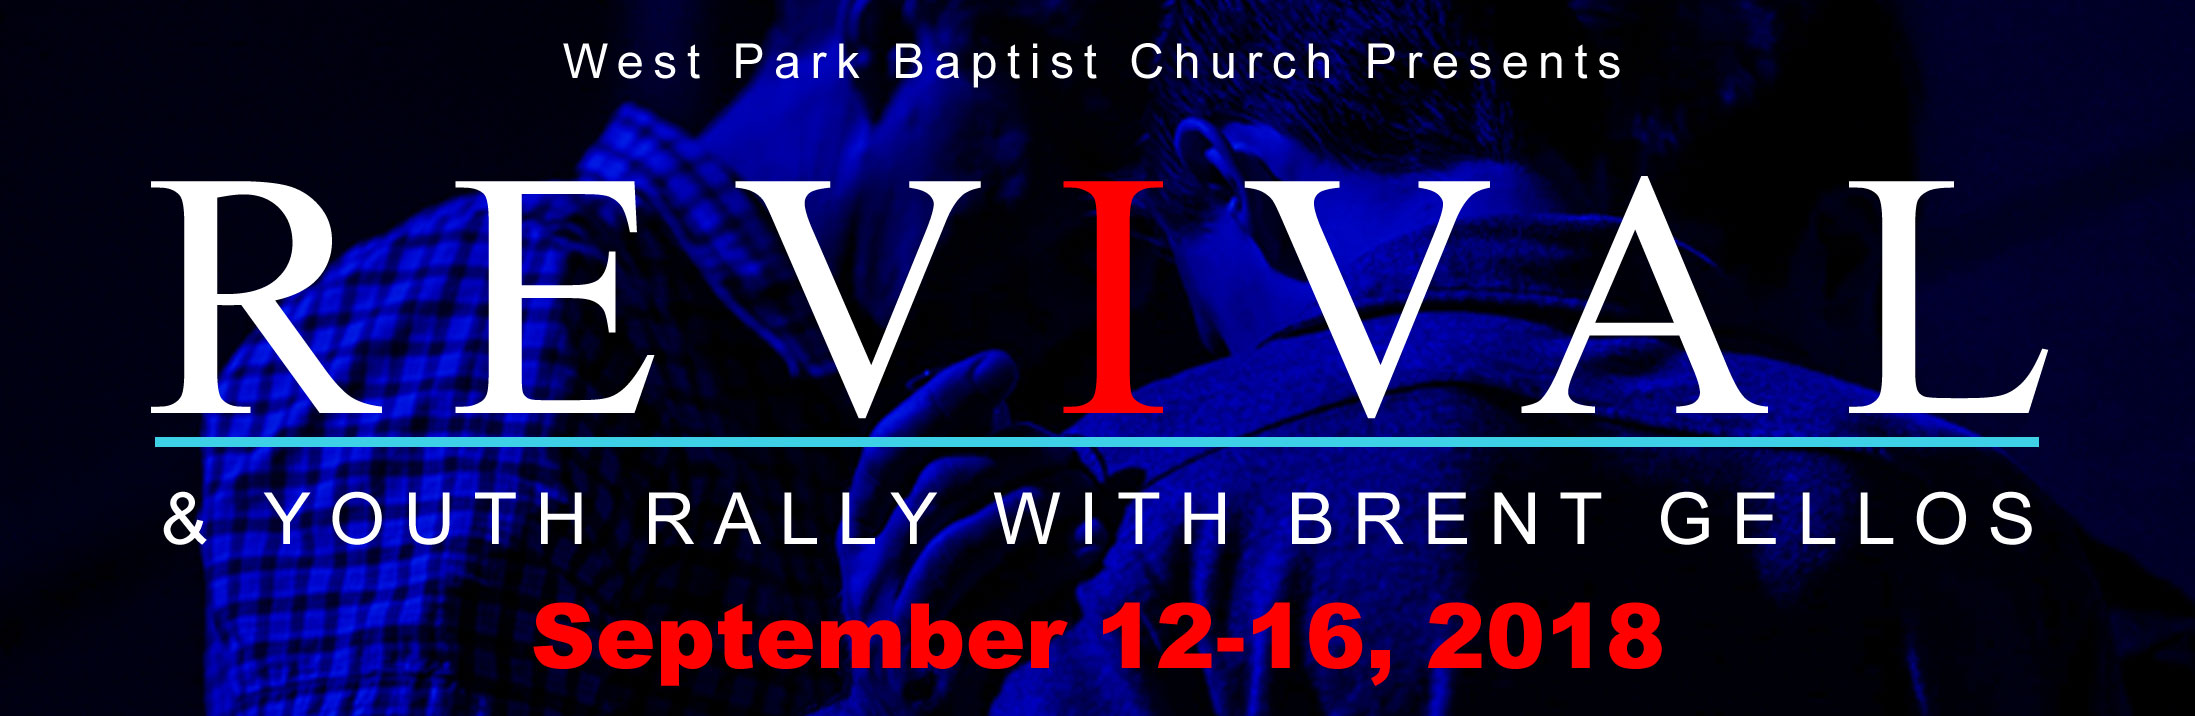 Revival and Youth Rally with Brent Gellos